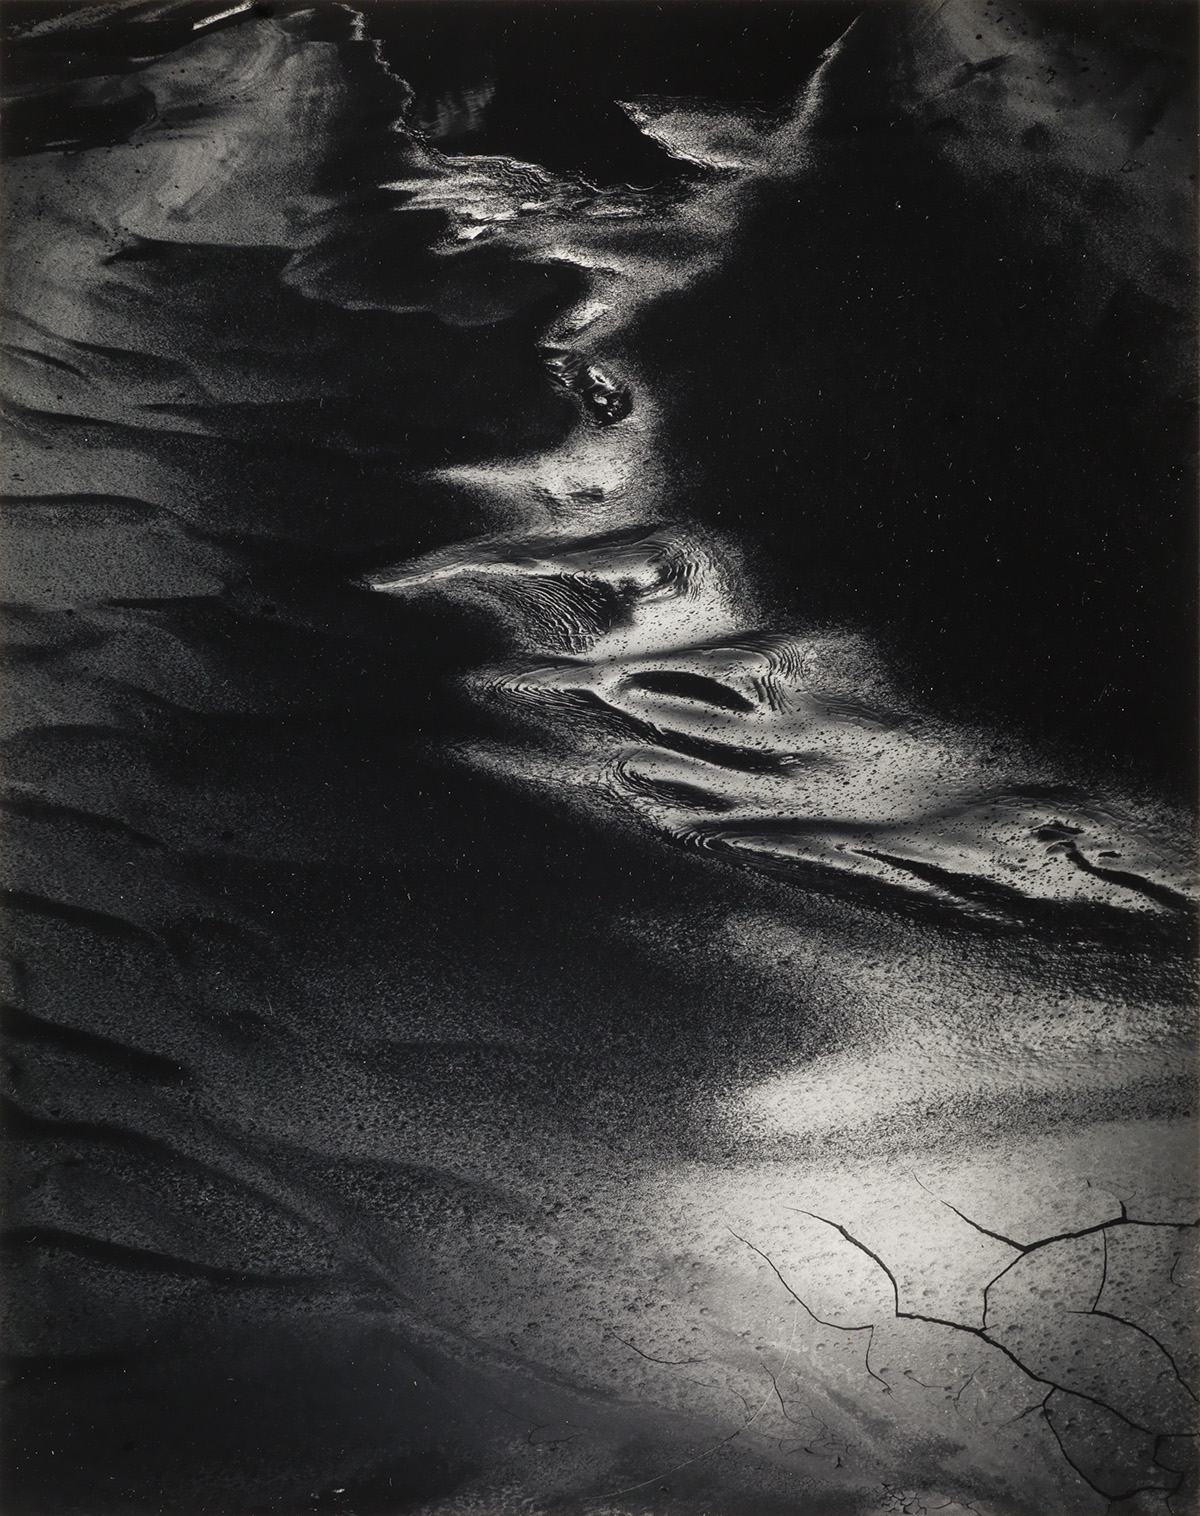 MINOR WHITE (1908-1976) Gallery Gully, Capitol Reef National Park, Utah.